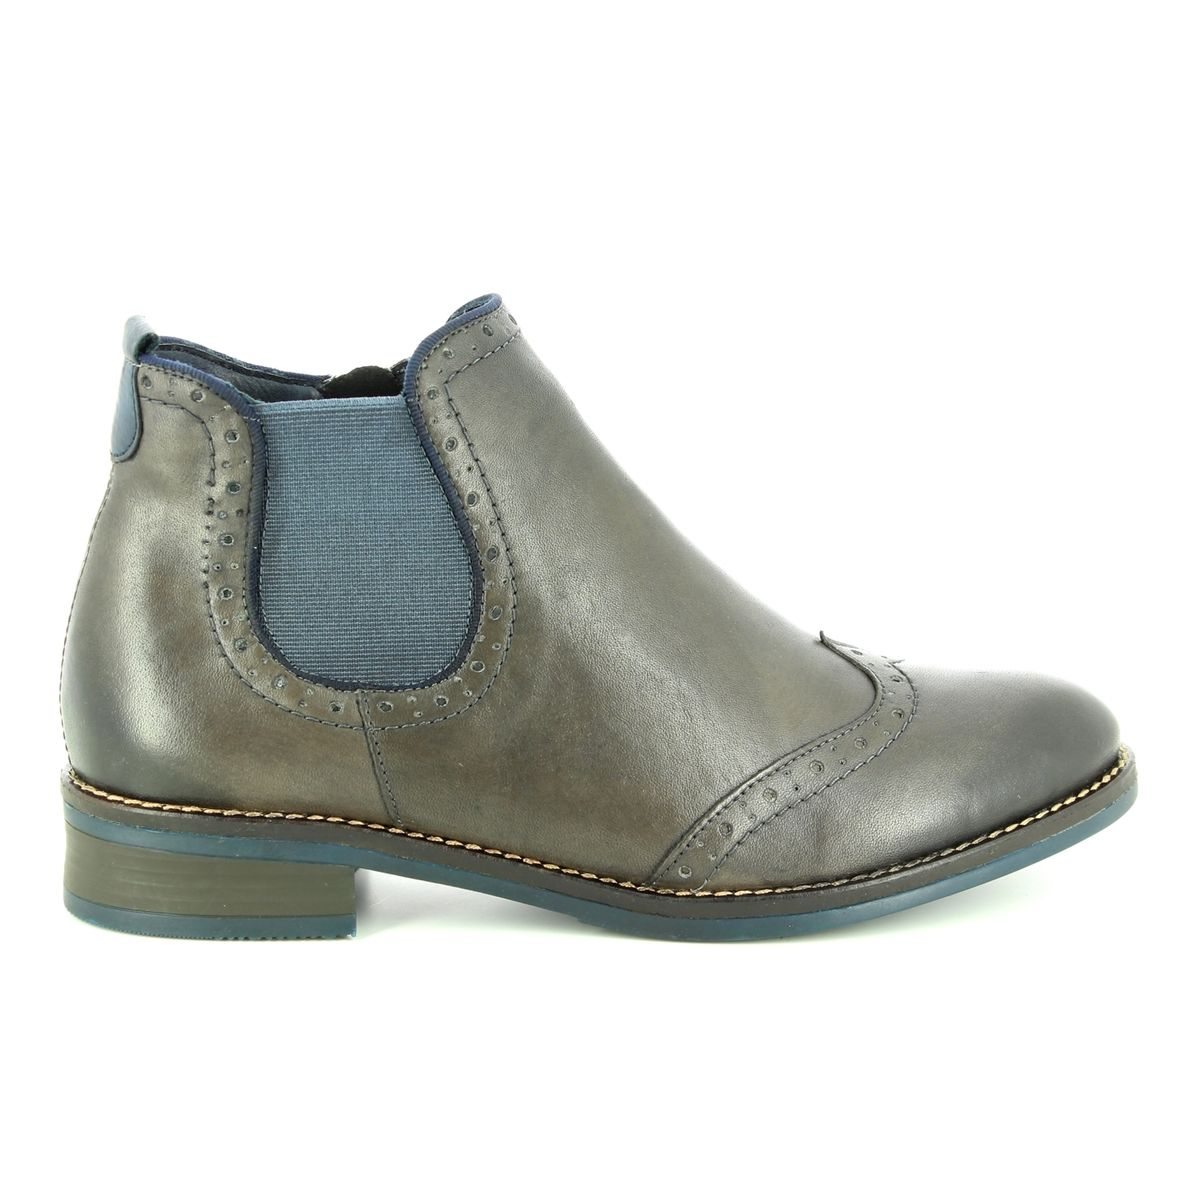 Remonte Brogue 85 D8581-45 Grey matt leather Chelsea Boots ae8a2cfd4